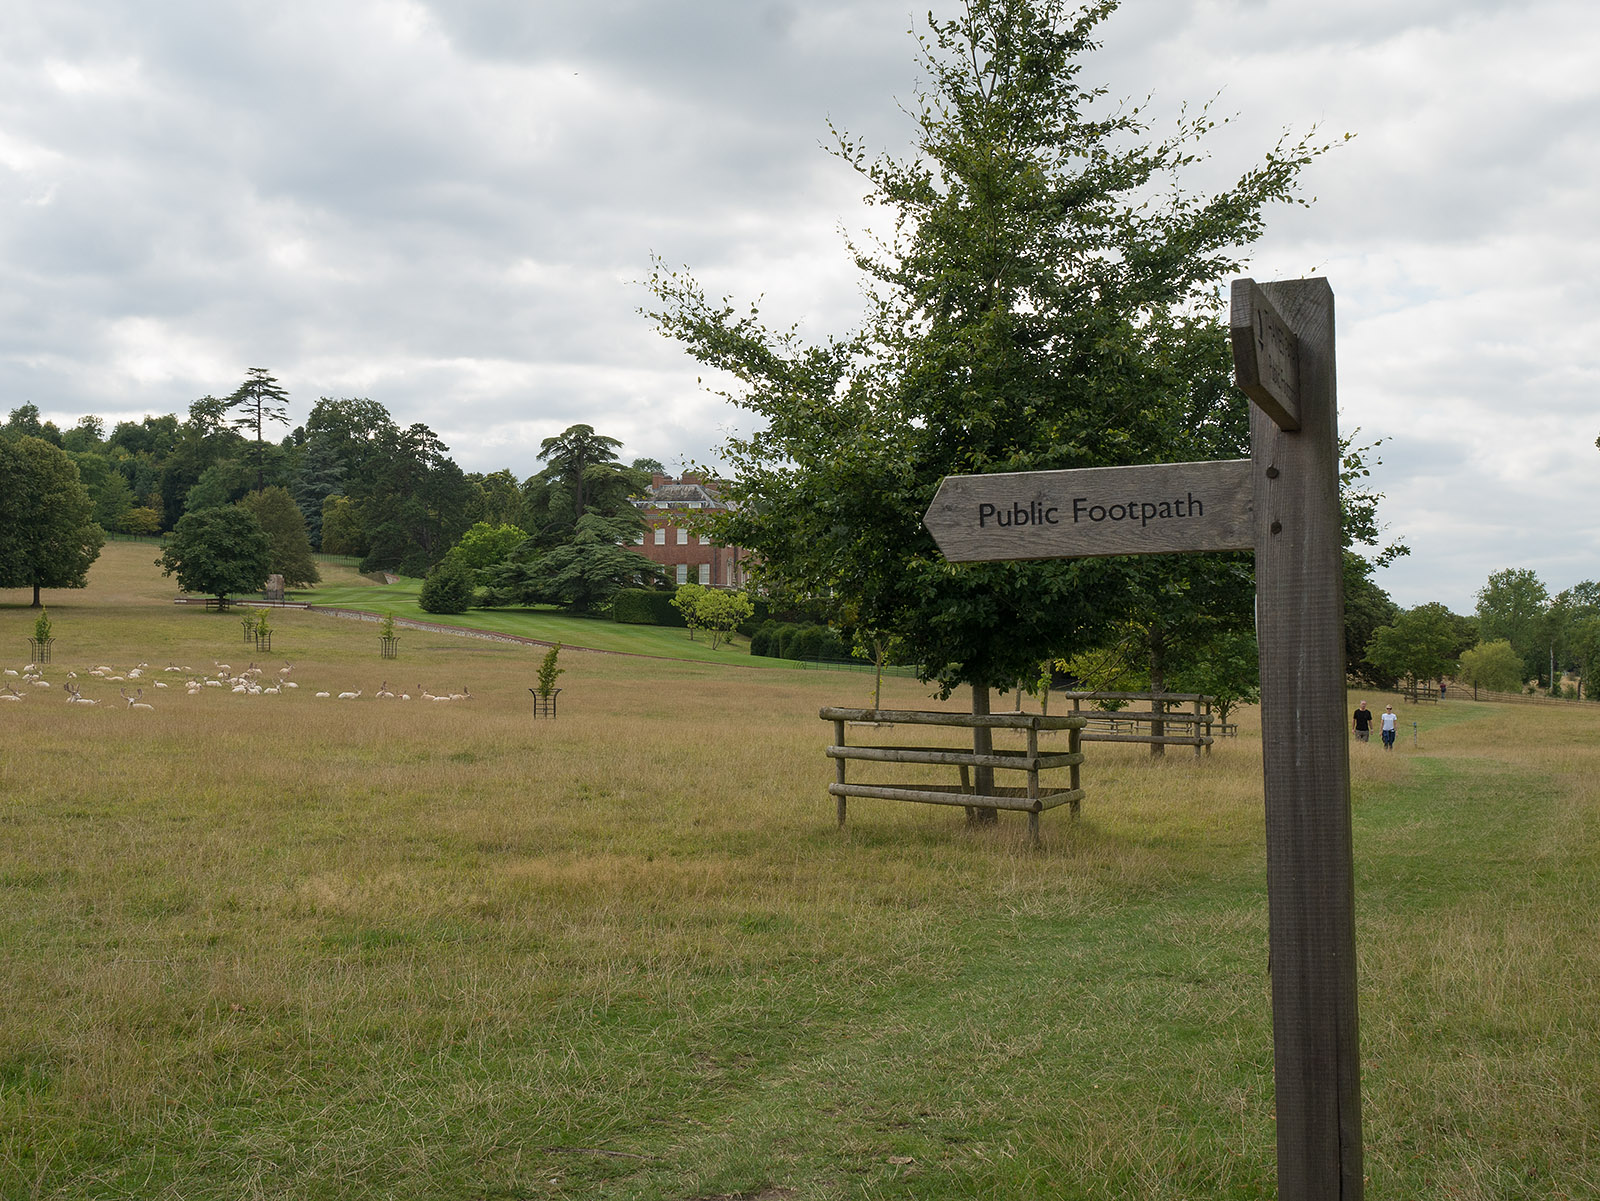 Public footpath across grounds of Culham Court